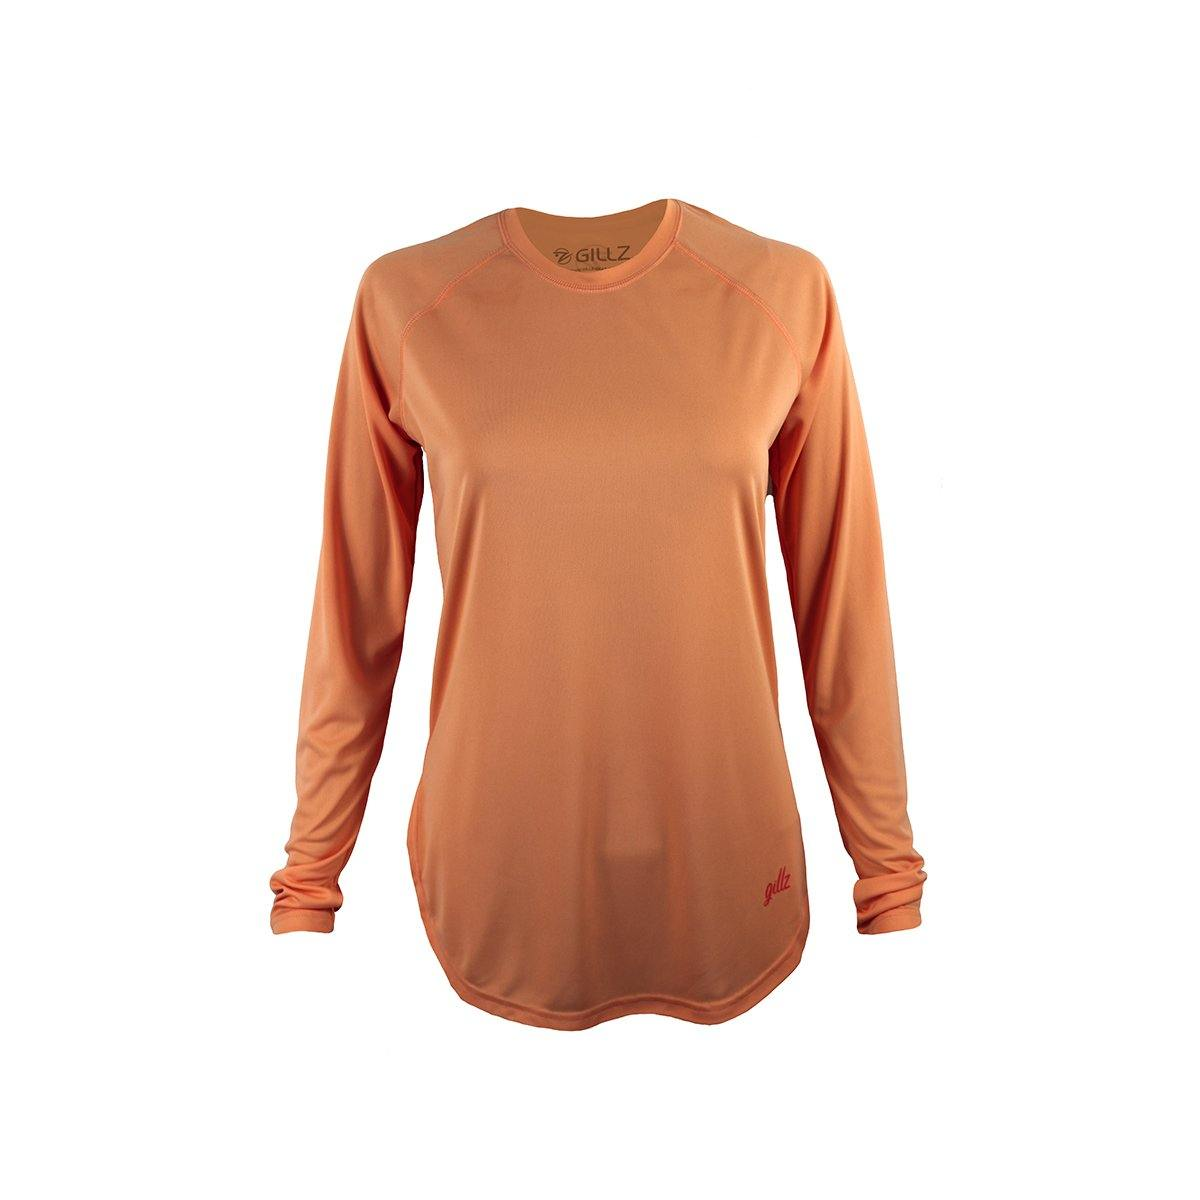 Gillz Women's Long Sleeve Seabreeze V2 - Papaya Punch